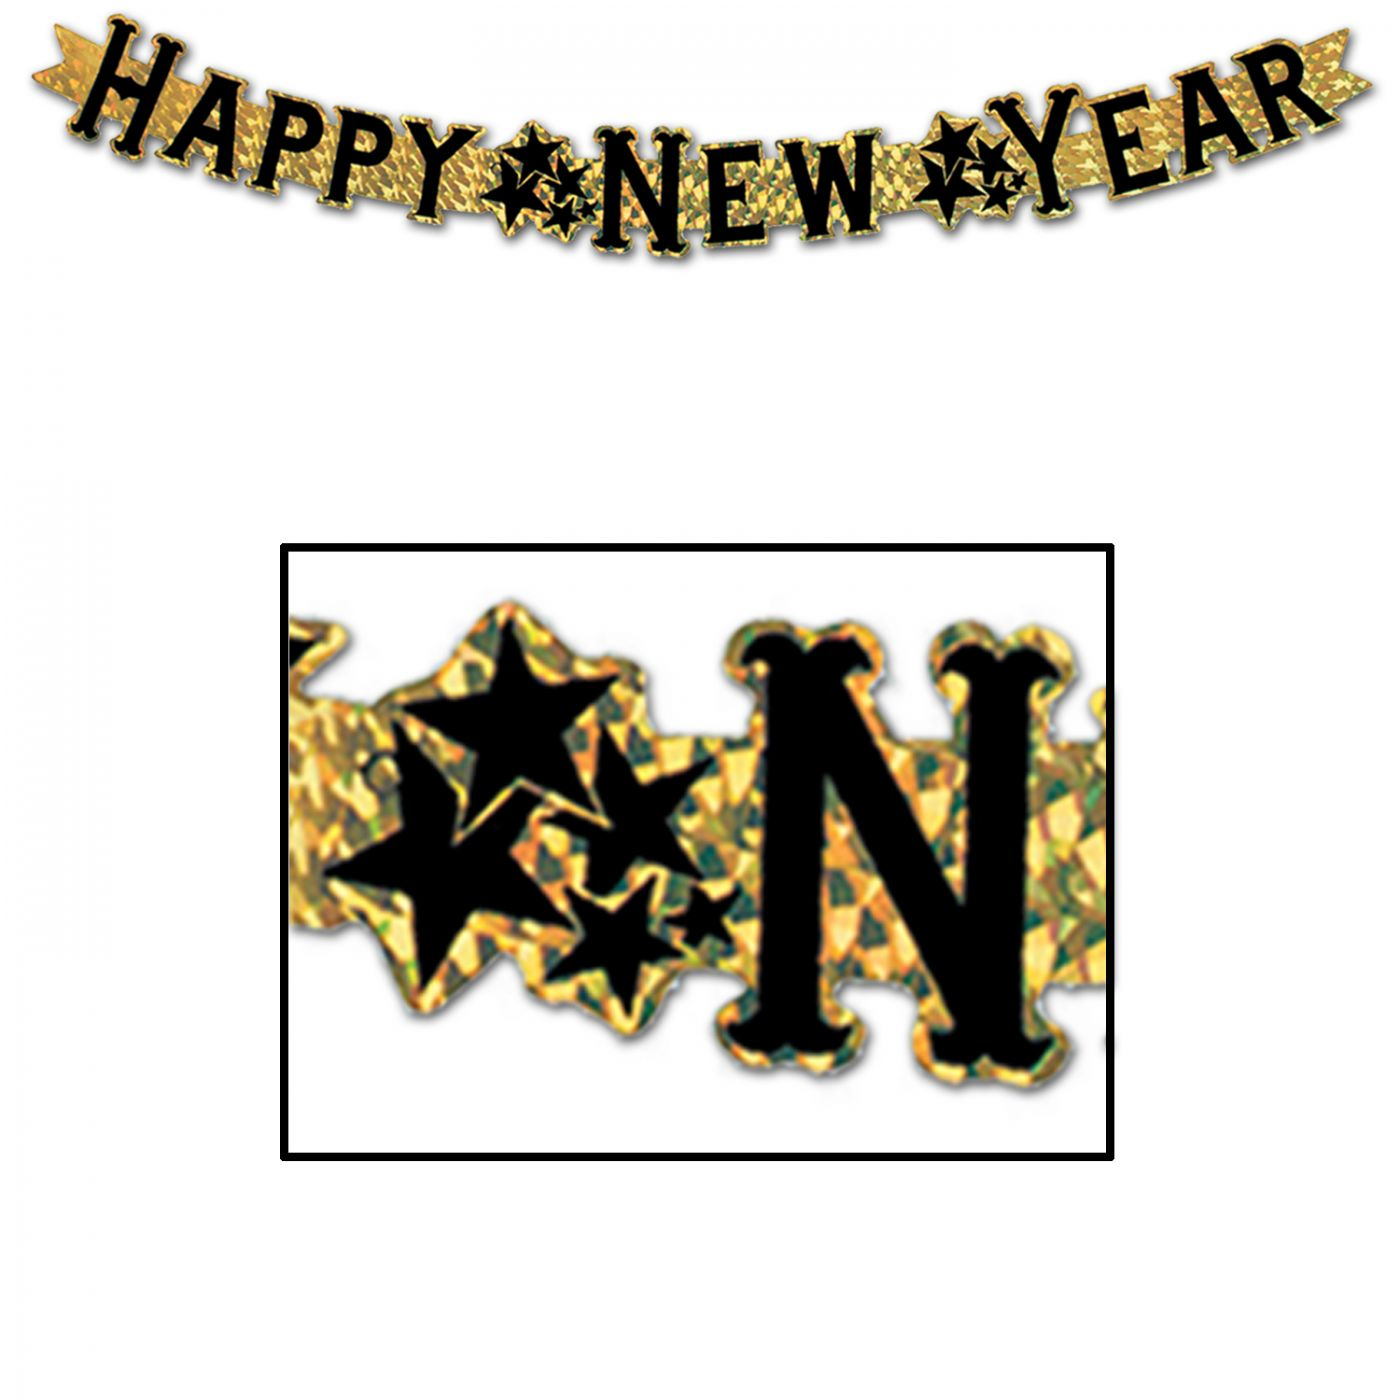 Prismatic Happy New Year Streamer image